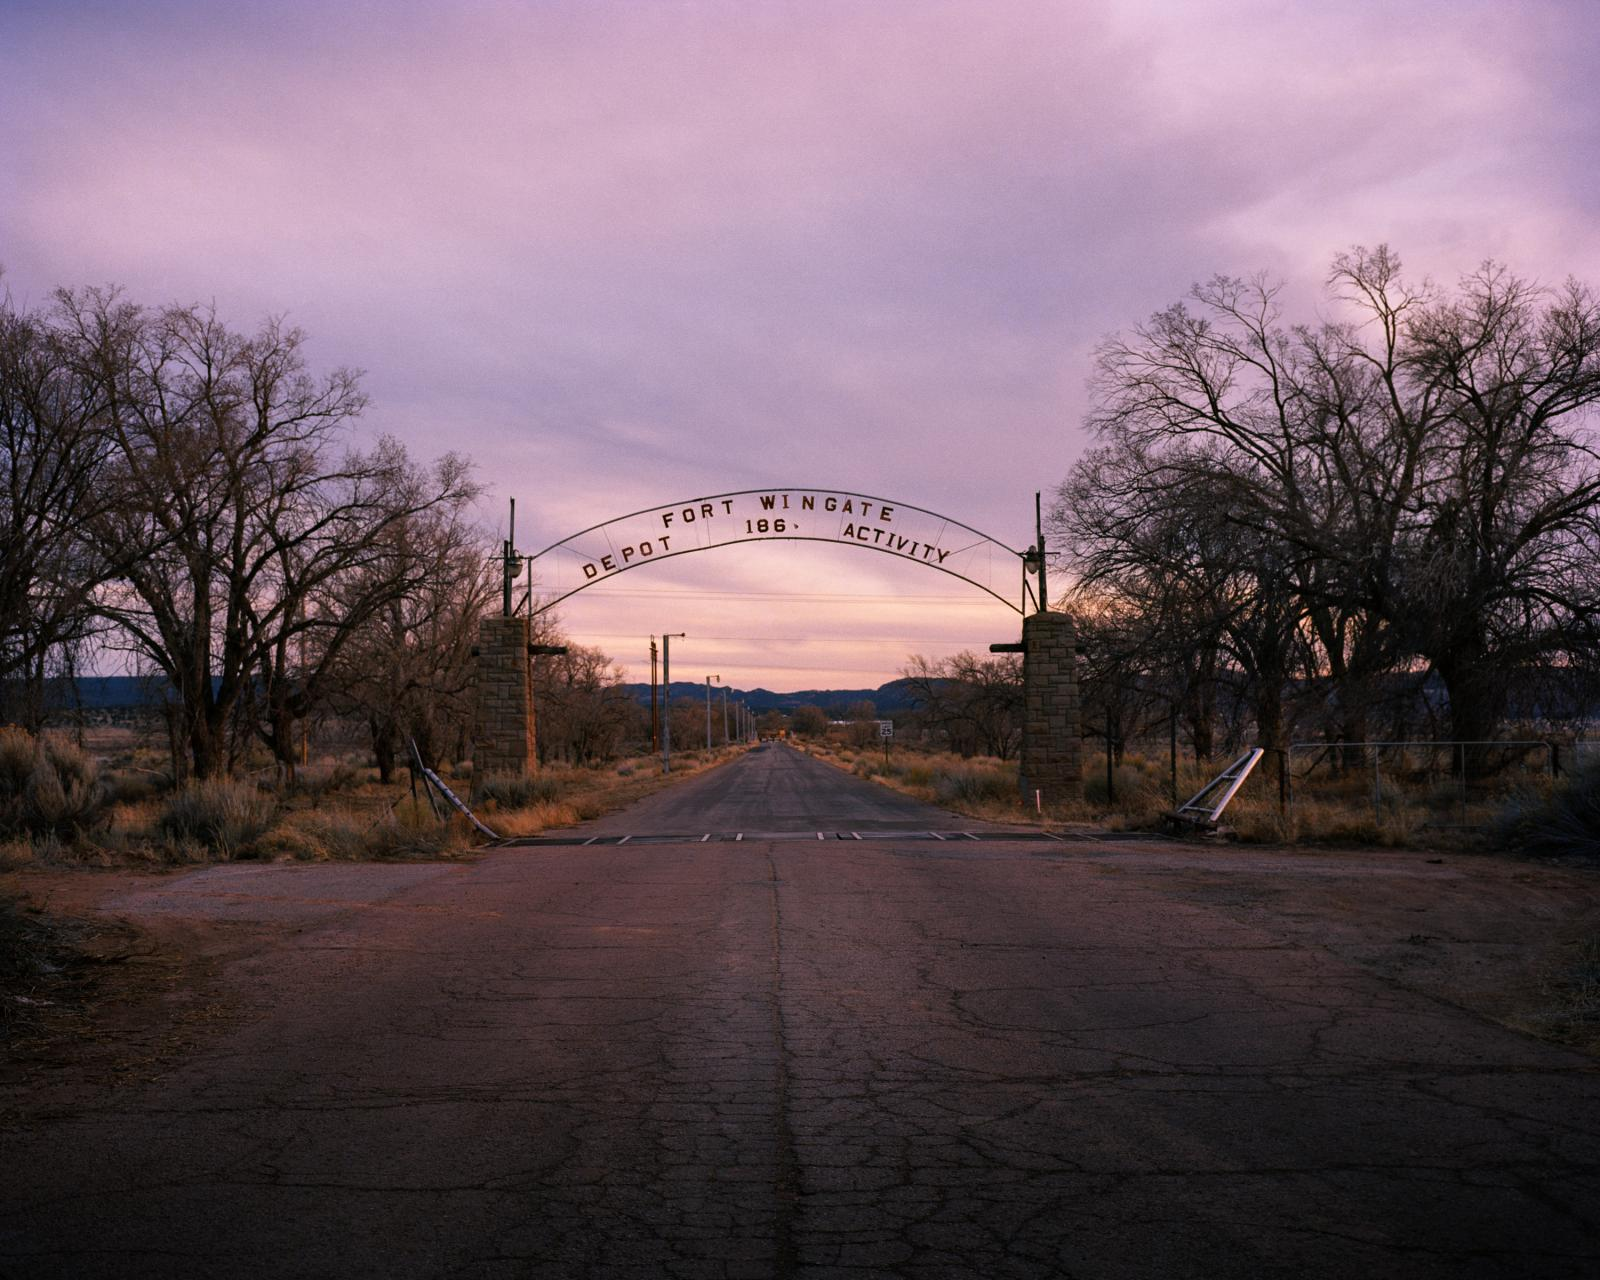 Ft. Wingate, New Mexico, 2016